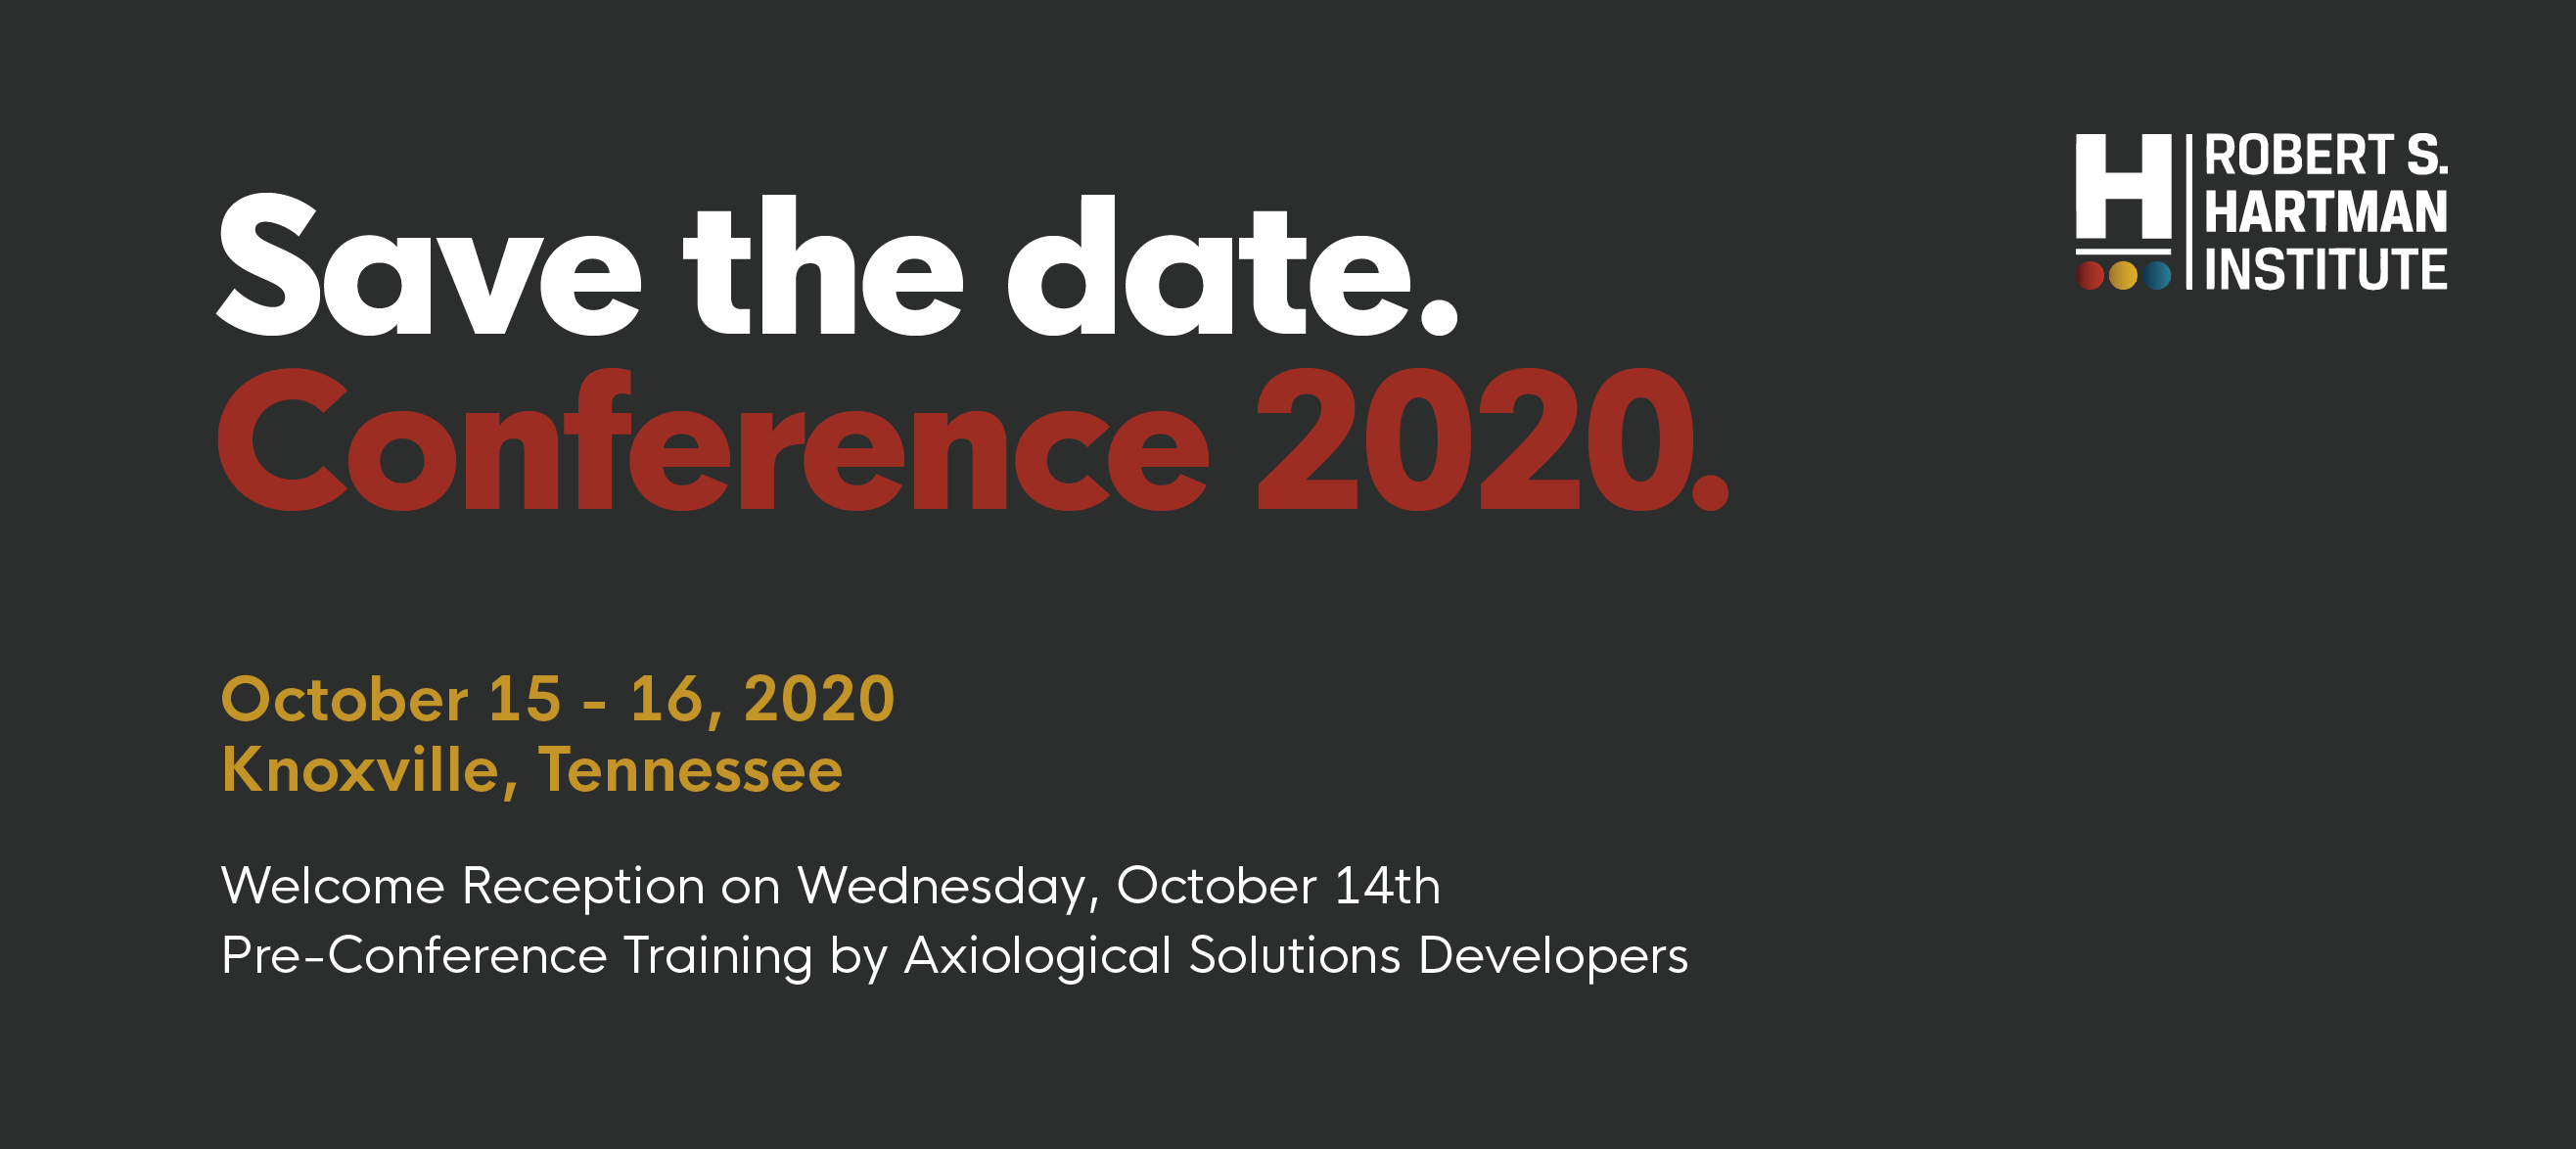 Save the Date Graphic for 44th Annual Conference 2020